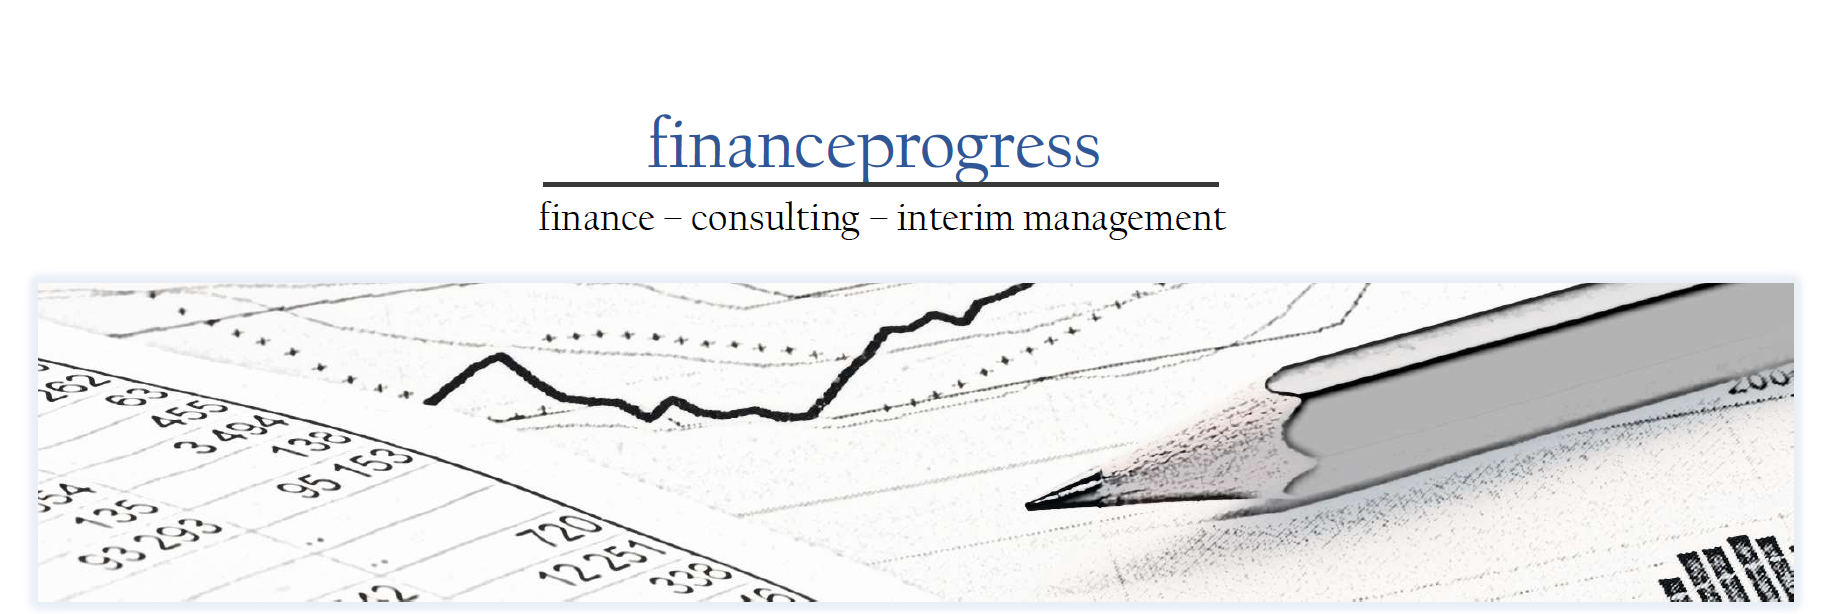 Financeprogress